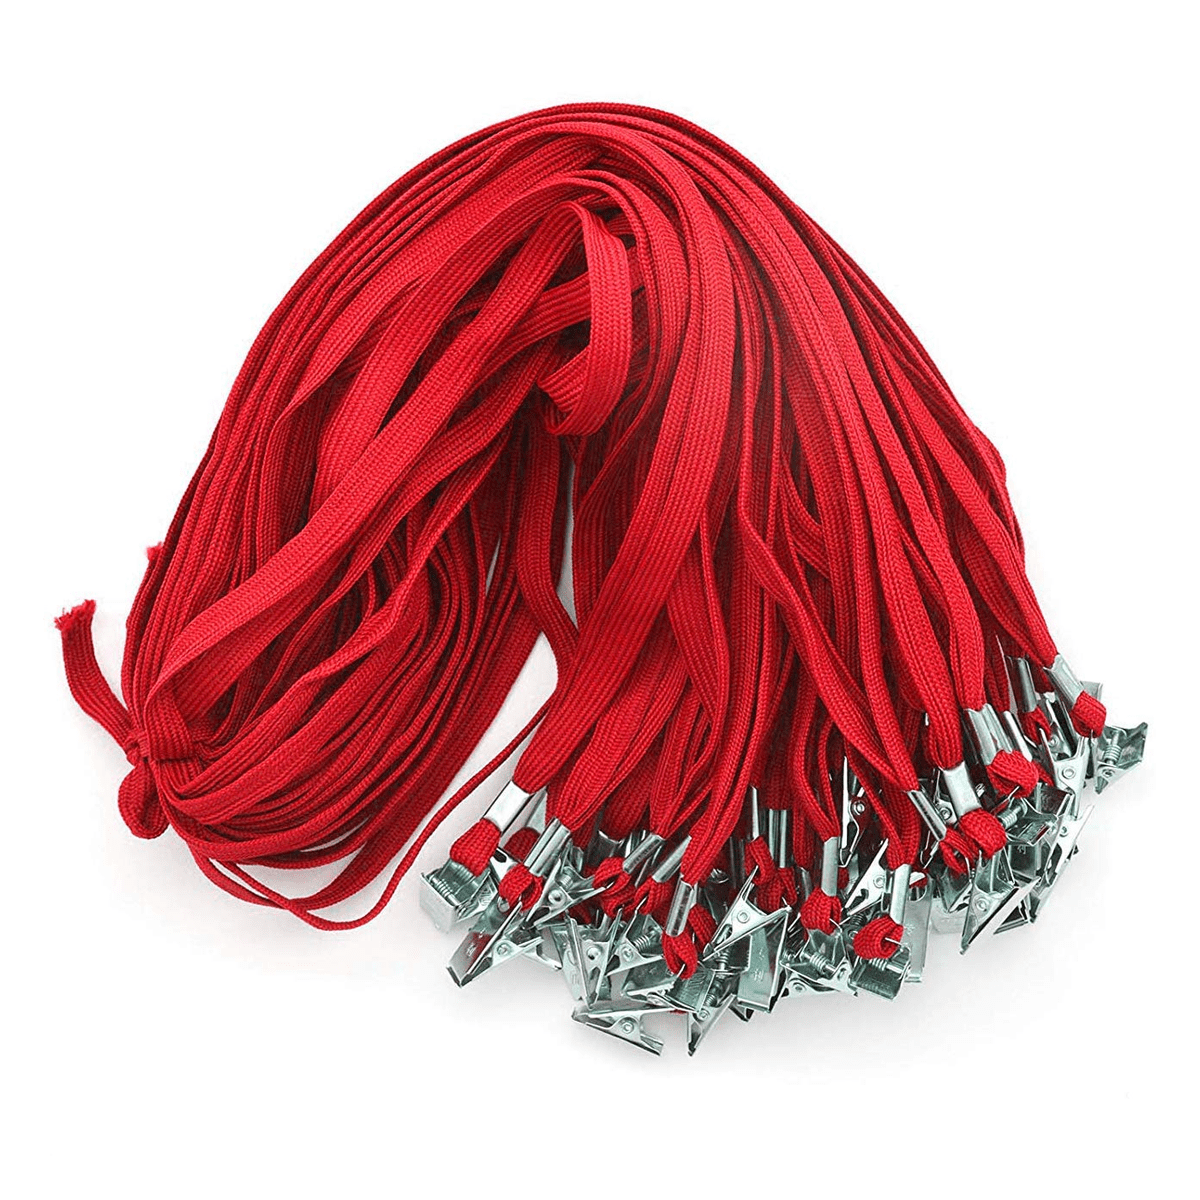 SQUARE 50 PCS 32-Inch Flat Lanyards with Bull Dog Clip